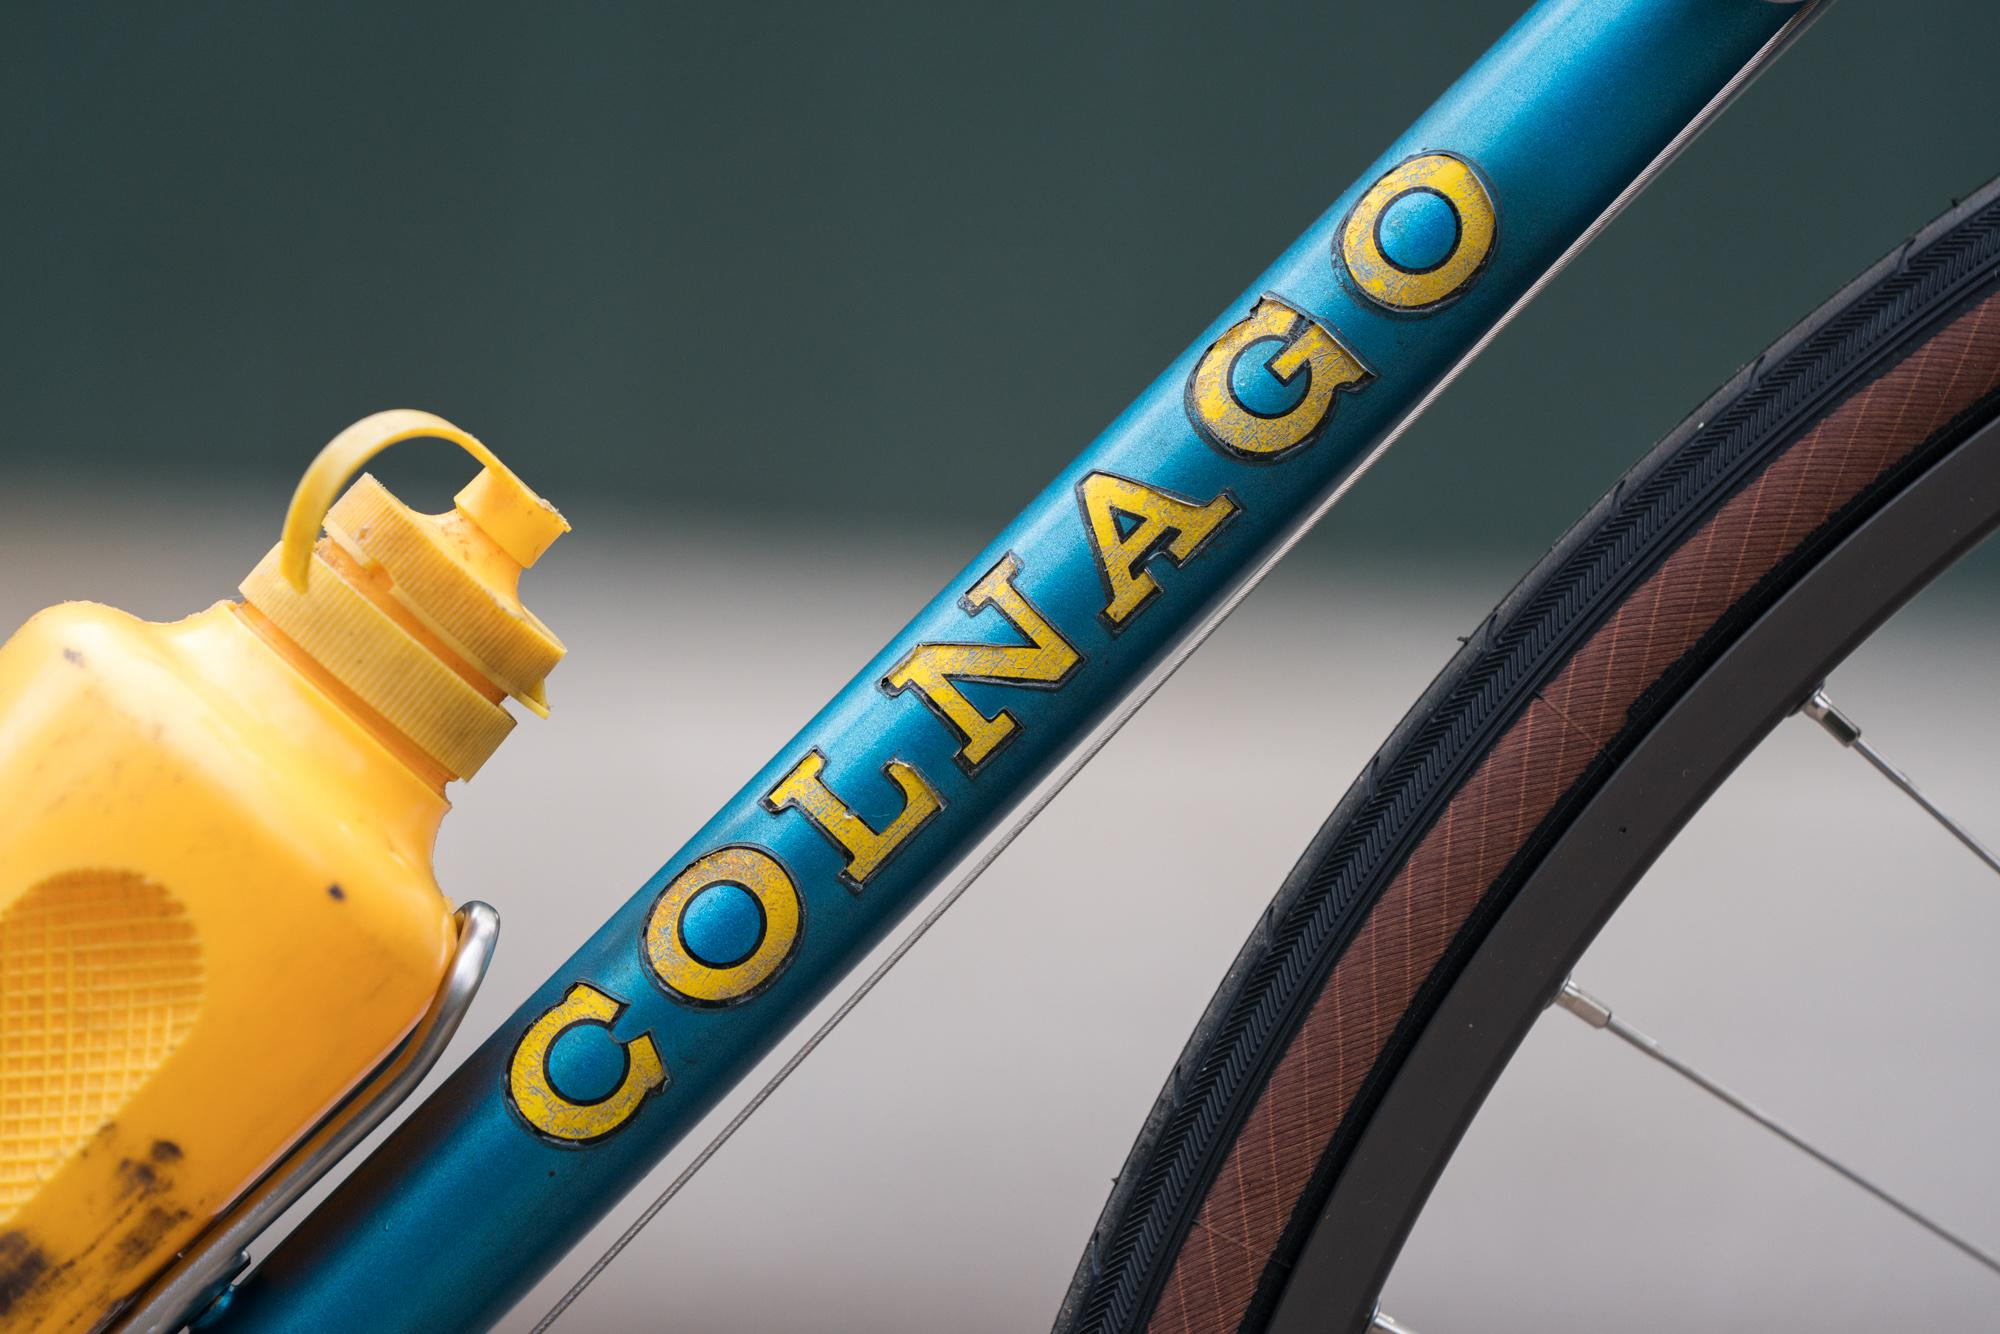 Johns Cool Colnago Coolnago (6 of 27)